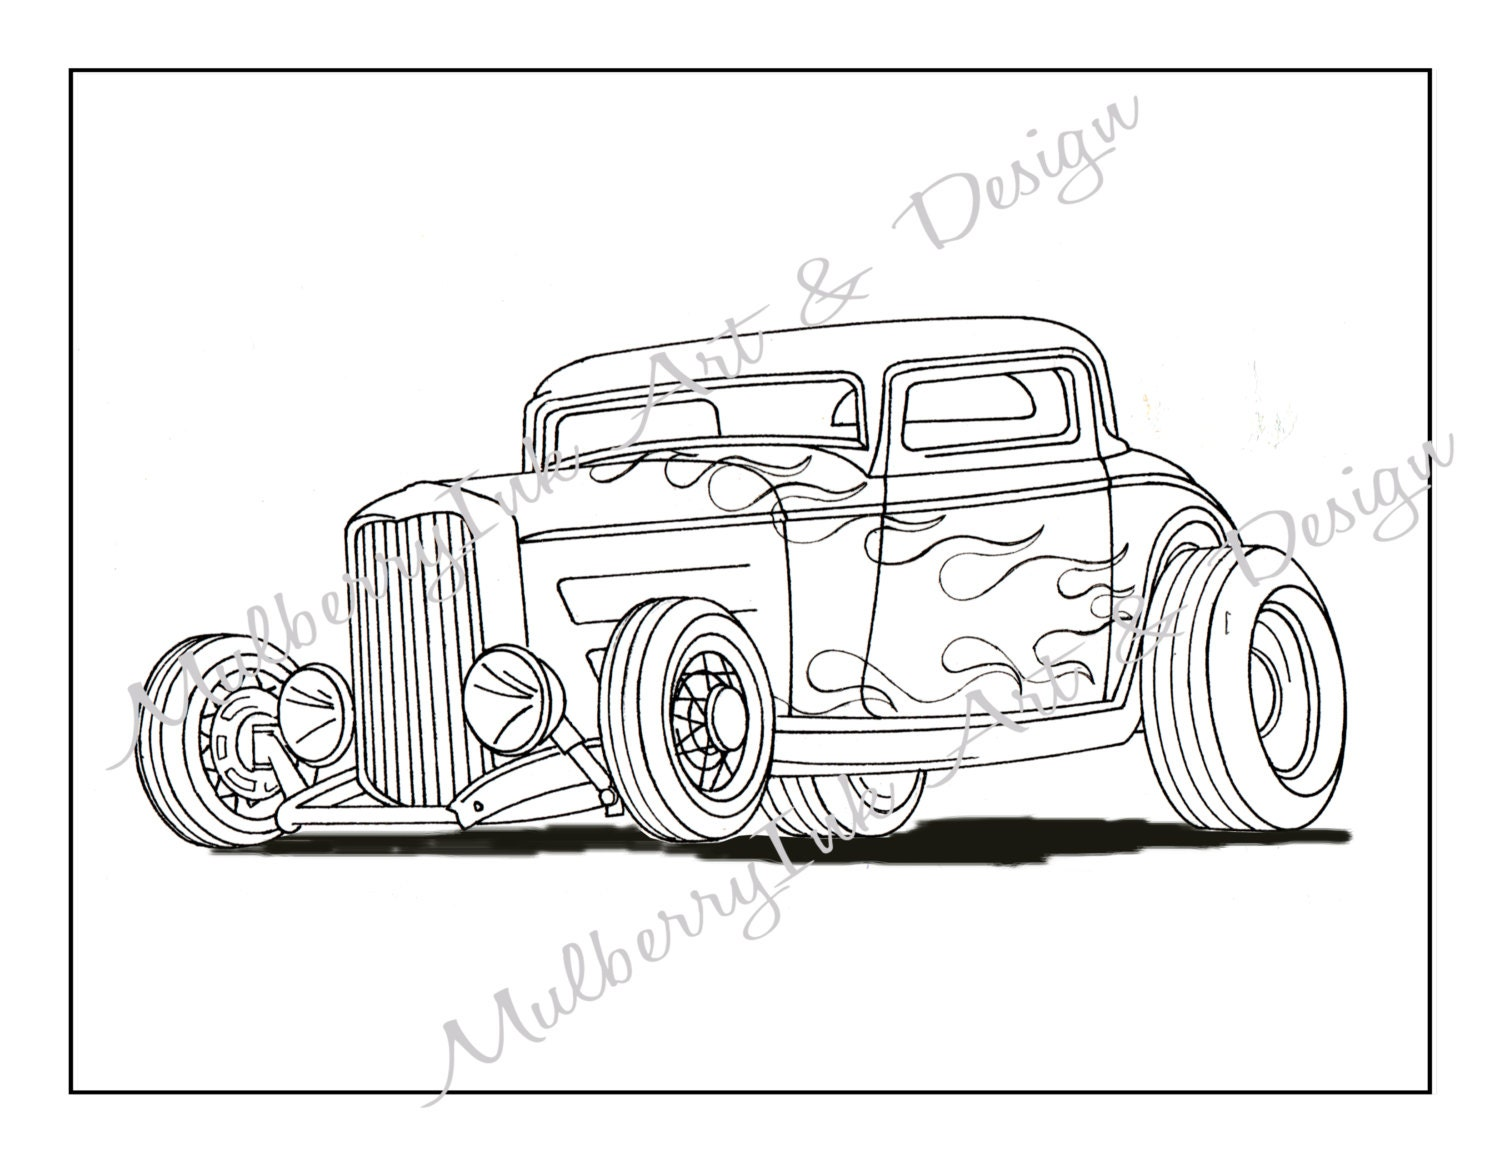 Antique cars coloring pages - Coloring Page Classic Car Coloring Page Hot Rod Coloring Page Adult Coloring Page Cars Coloring Book Adult Coloring Book Kids Coloring Page